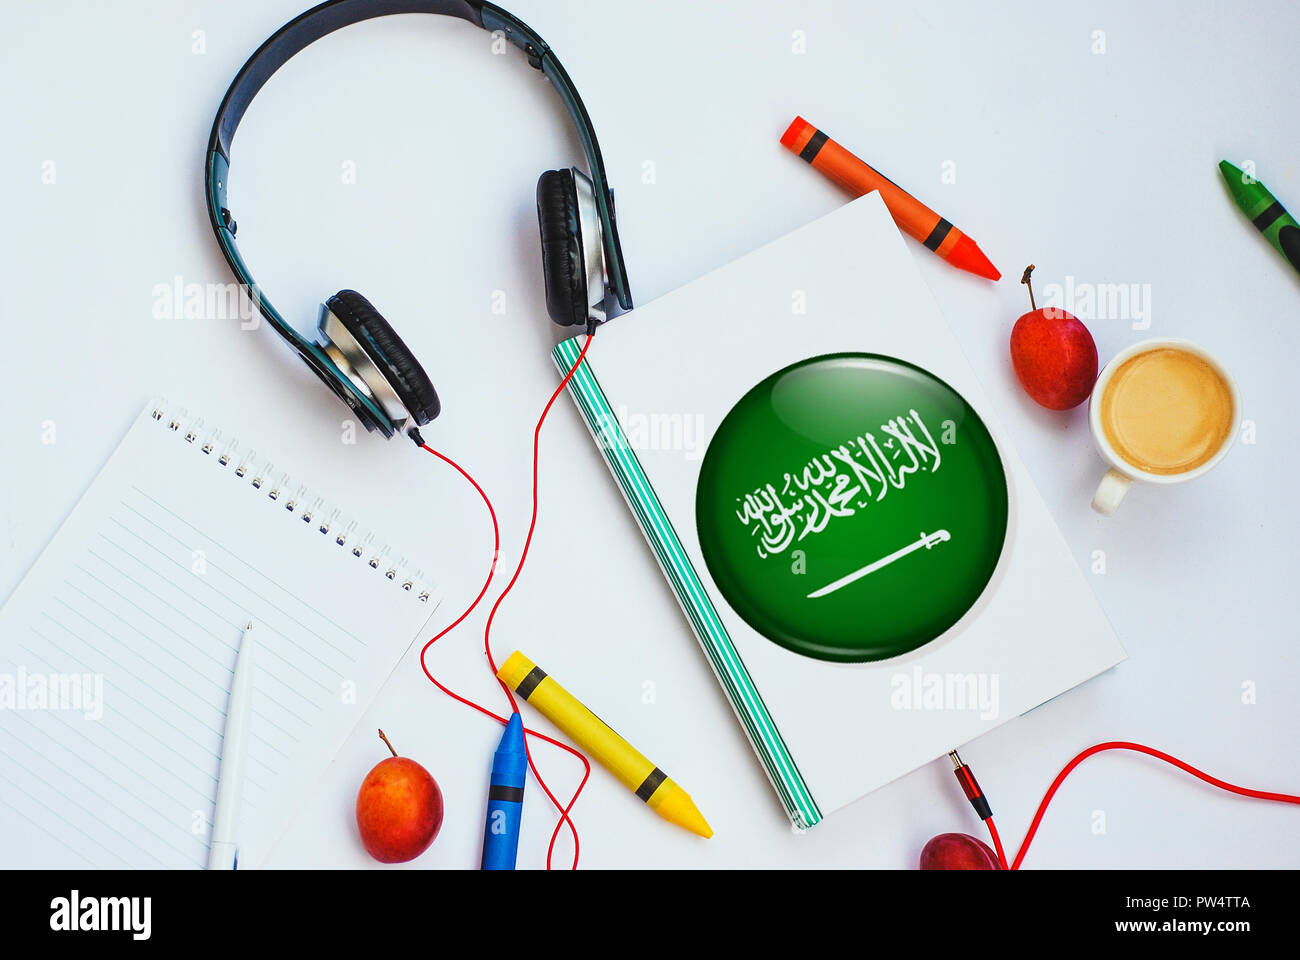 Learning Arabic Stock Photos & Learning Arabic Stock Images - Alamy